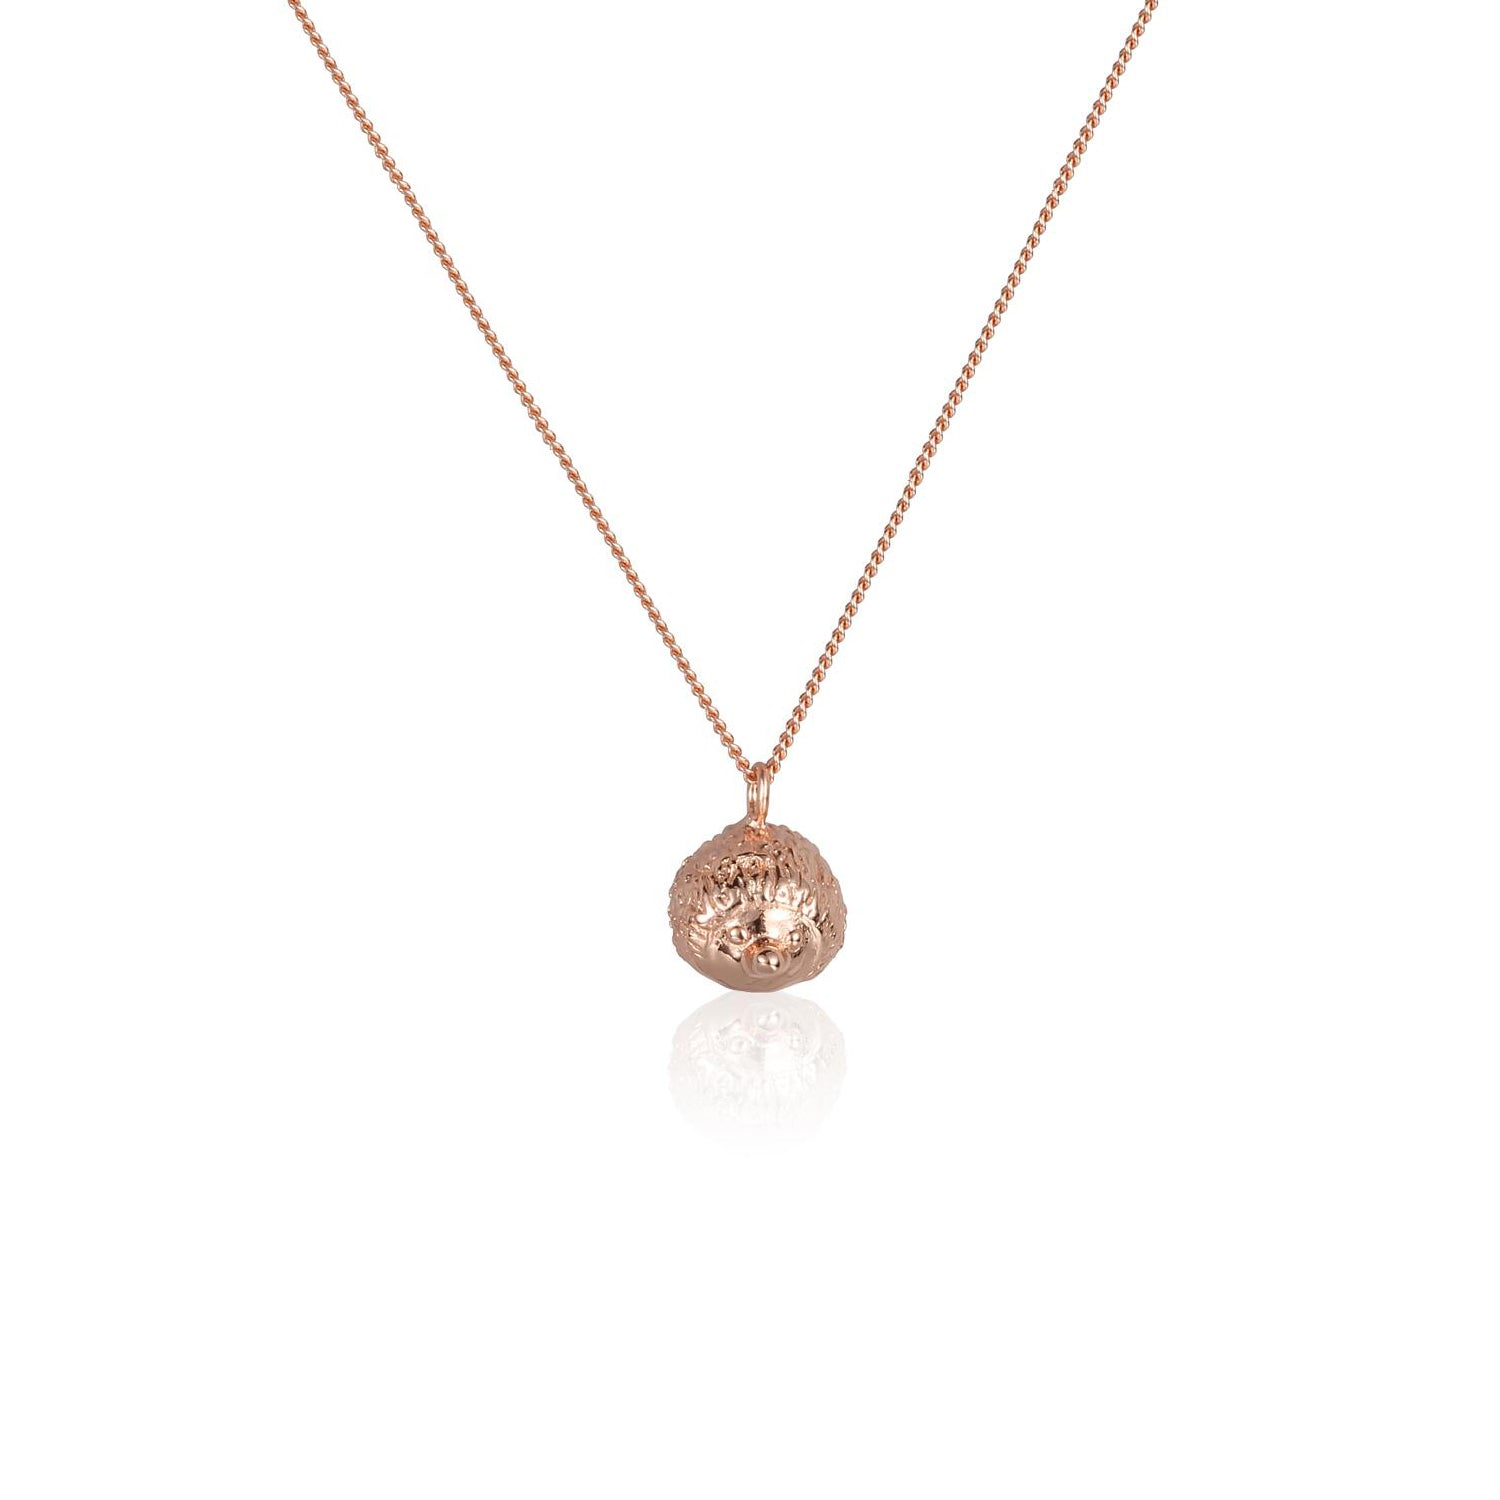 "心腹刺客 ""玫瑰金"" 項鍊 - A Hedgehog's Hug ""Rose Gold"" Necklace"